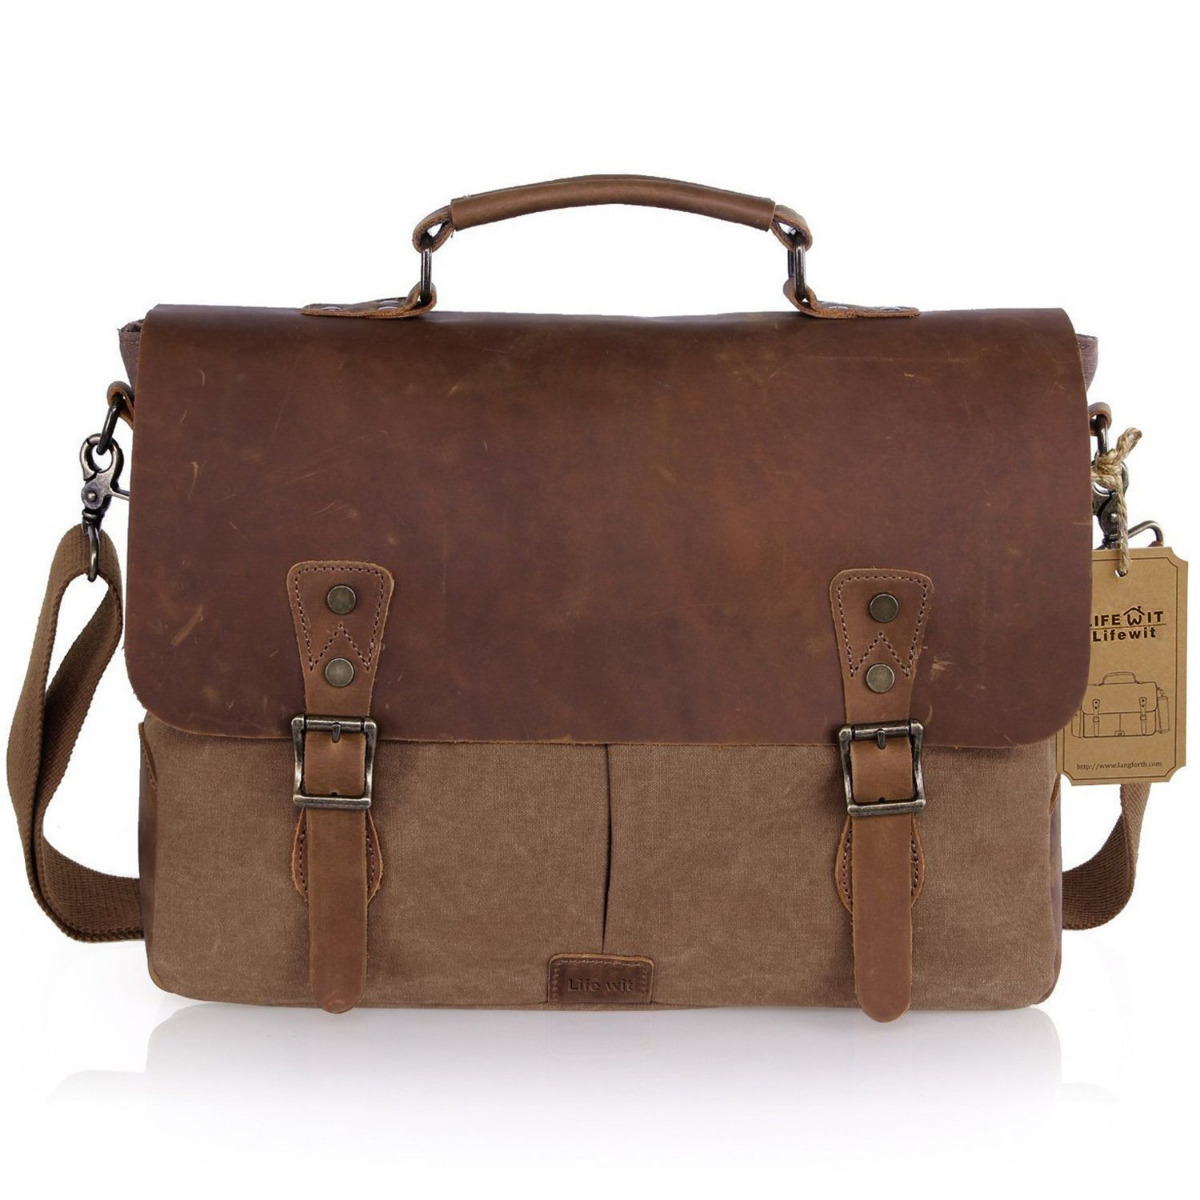 Lifewit 15.6 inch Leather Laptop Messenger Satchel Bag Canvas Briefcase, Coffee